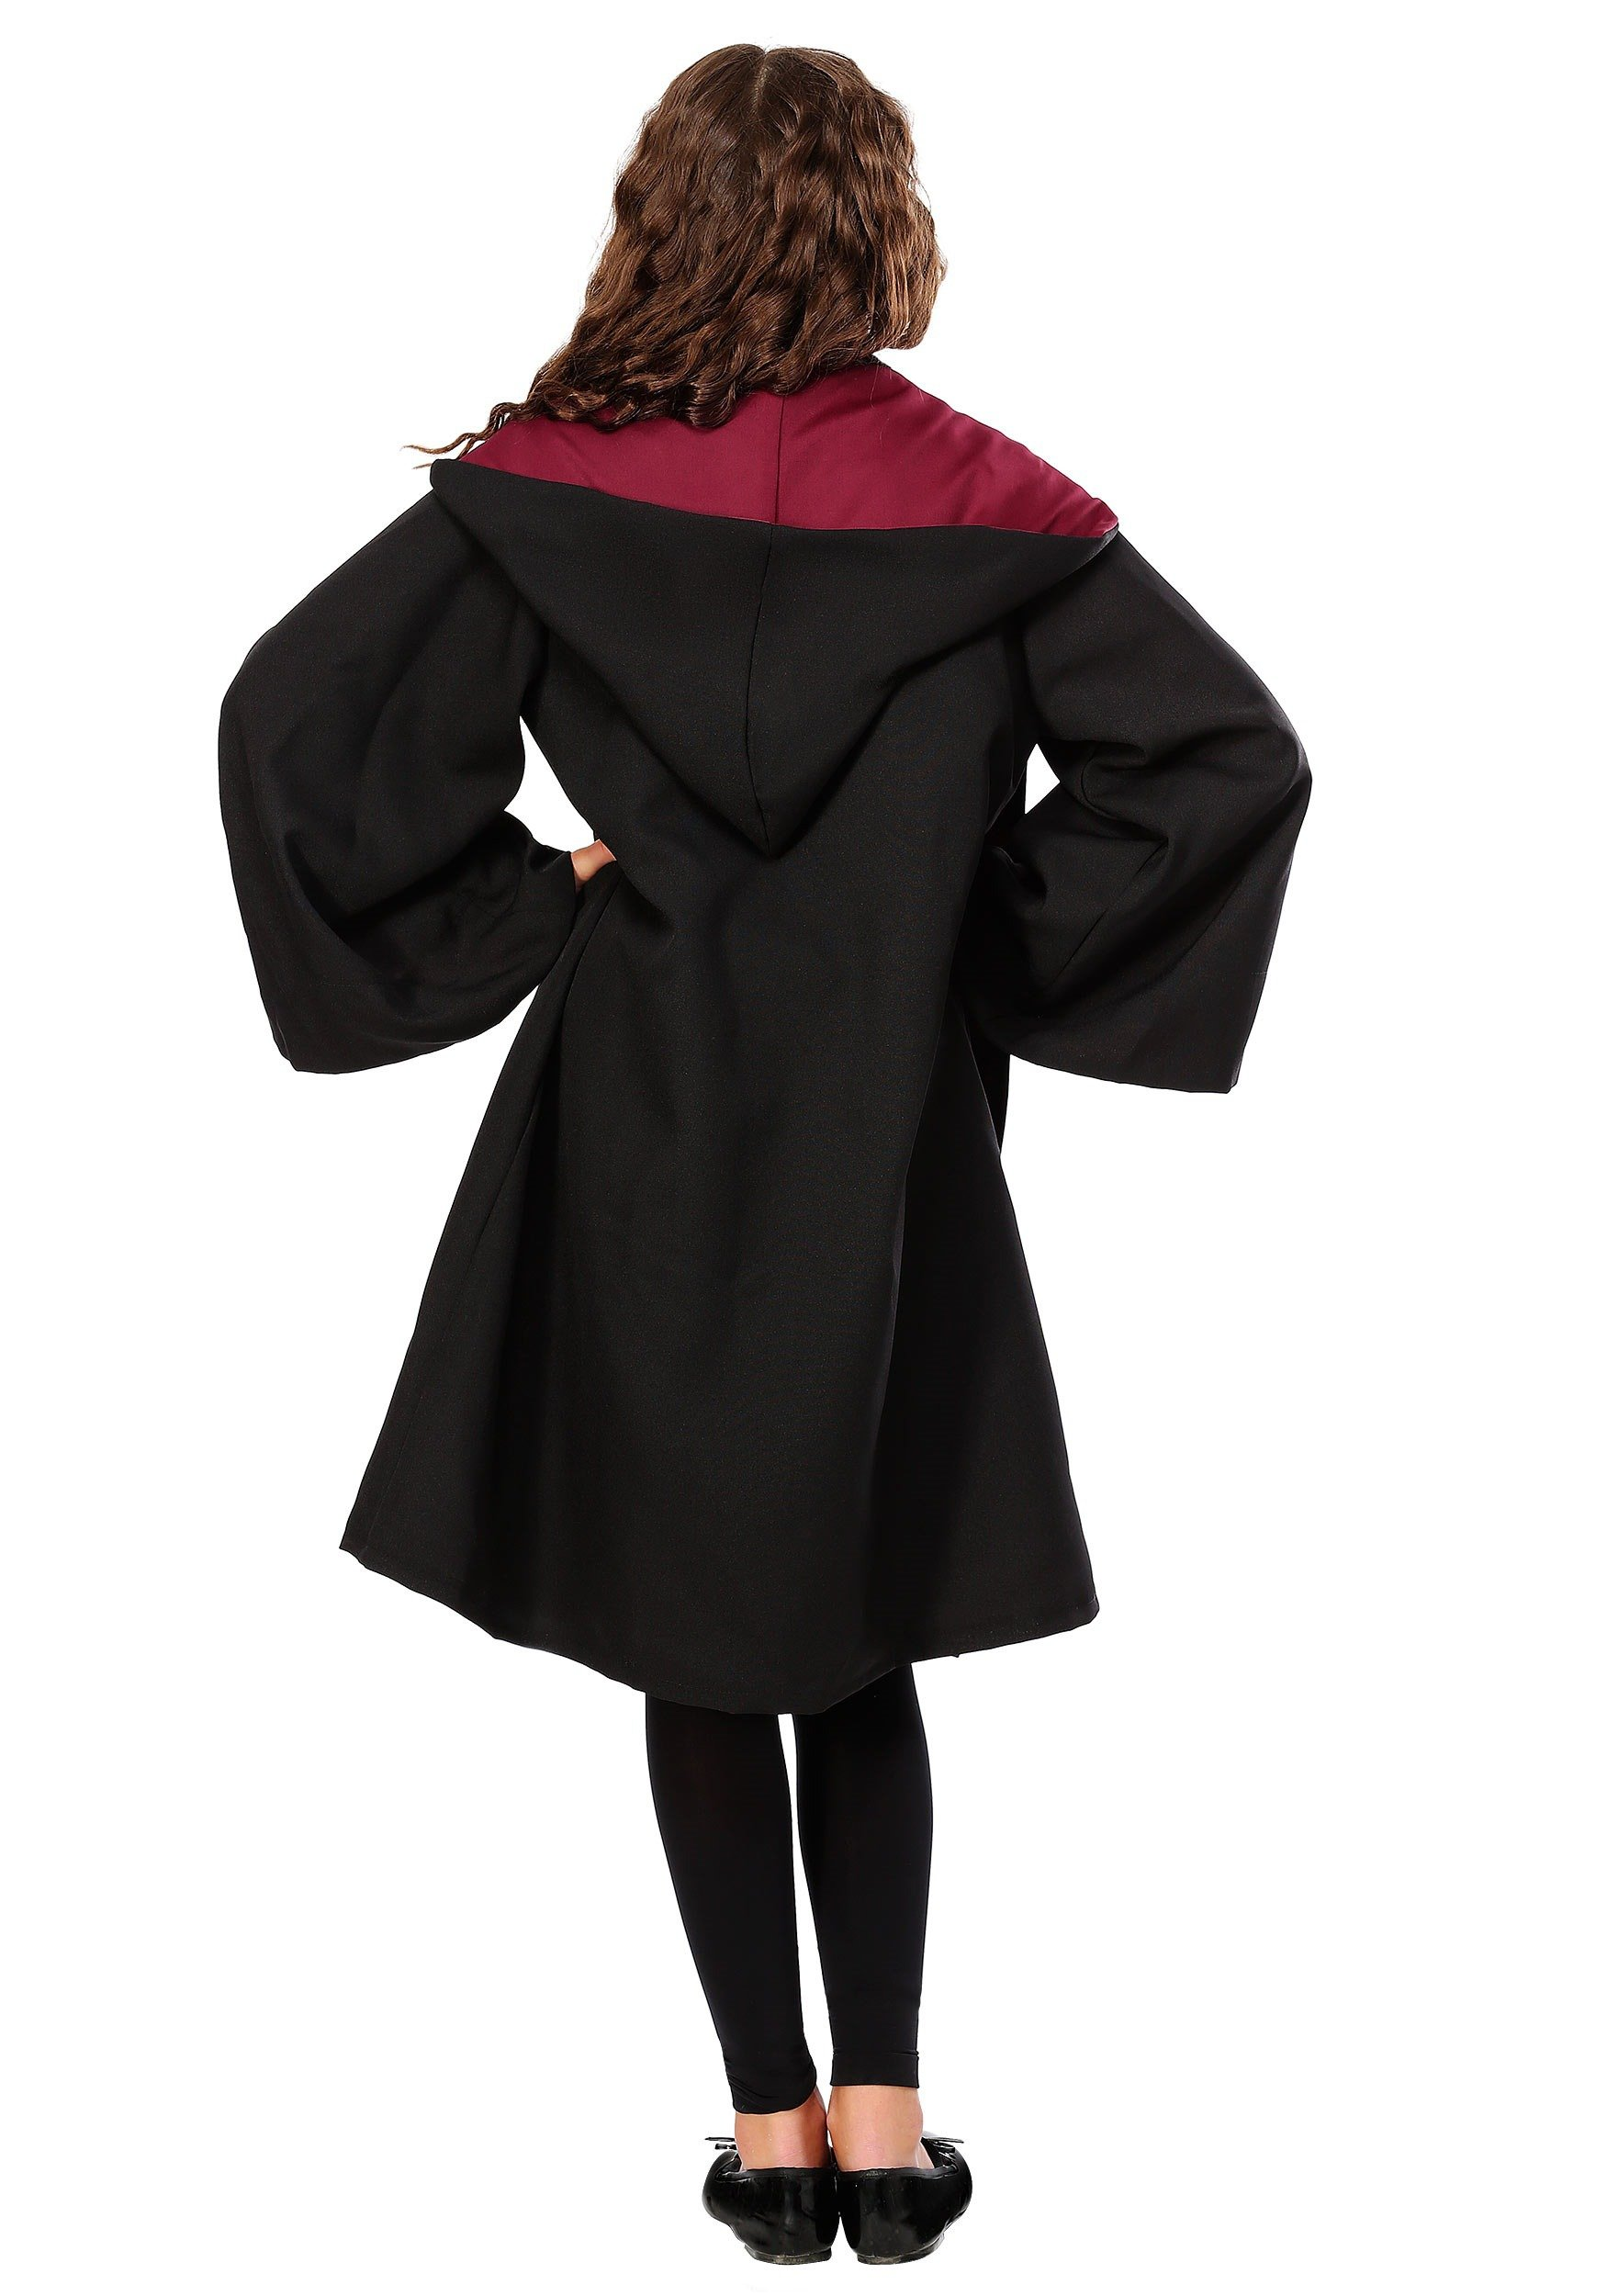 Girls Deluxe Hermione Granger Uniform and Robe Costume - XS by Charades (Image #4)